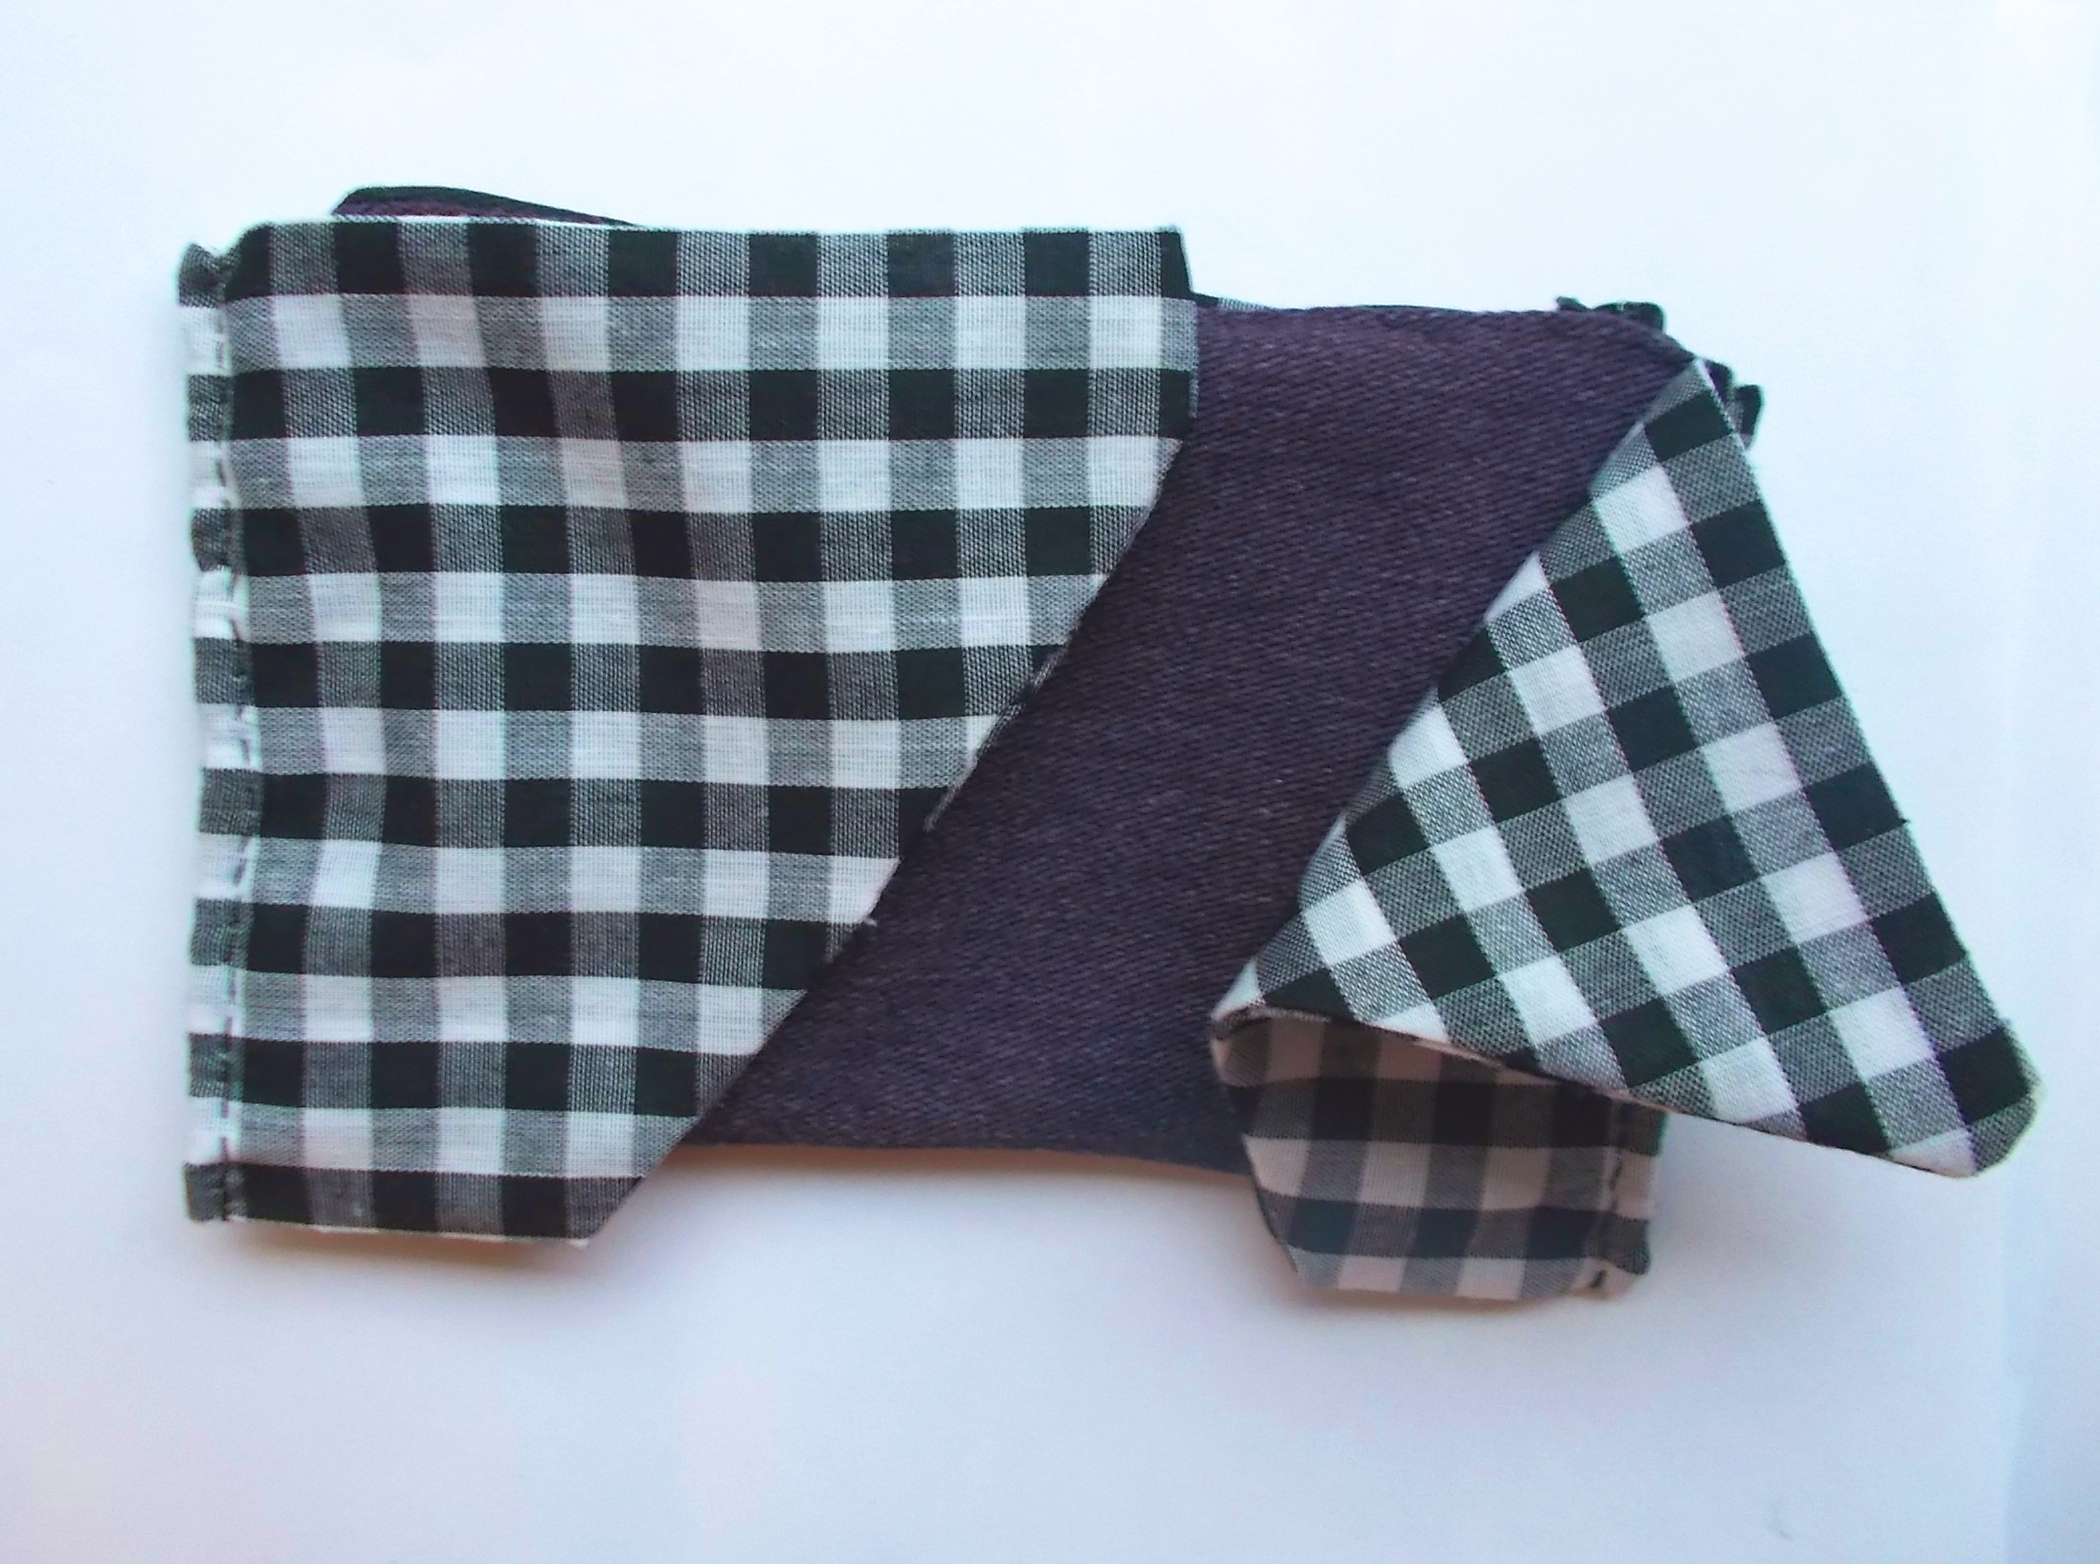 Picture of Attaching Coin Purse to Trapezoids and Ironing